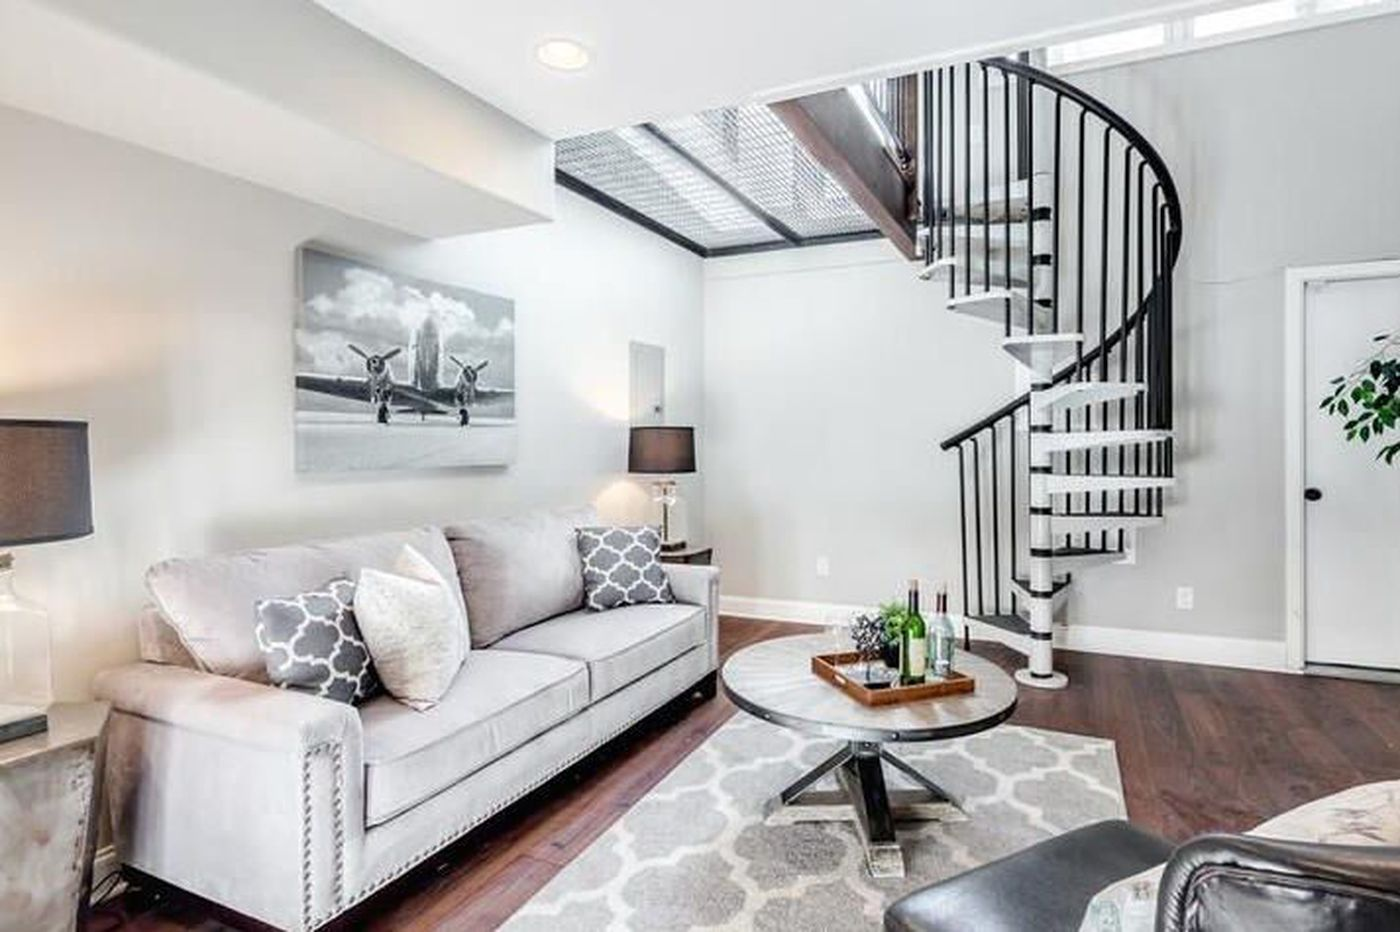 On the market: A Northern Liberties investment property goes from rental to sale